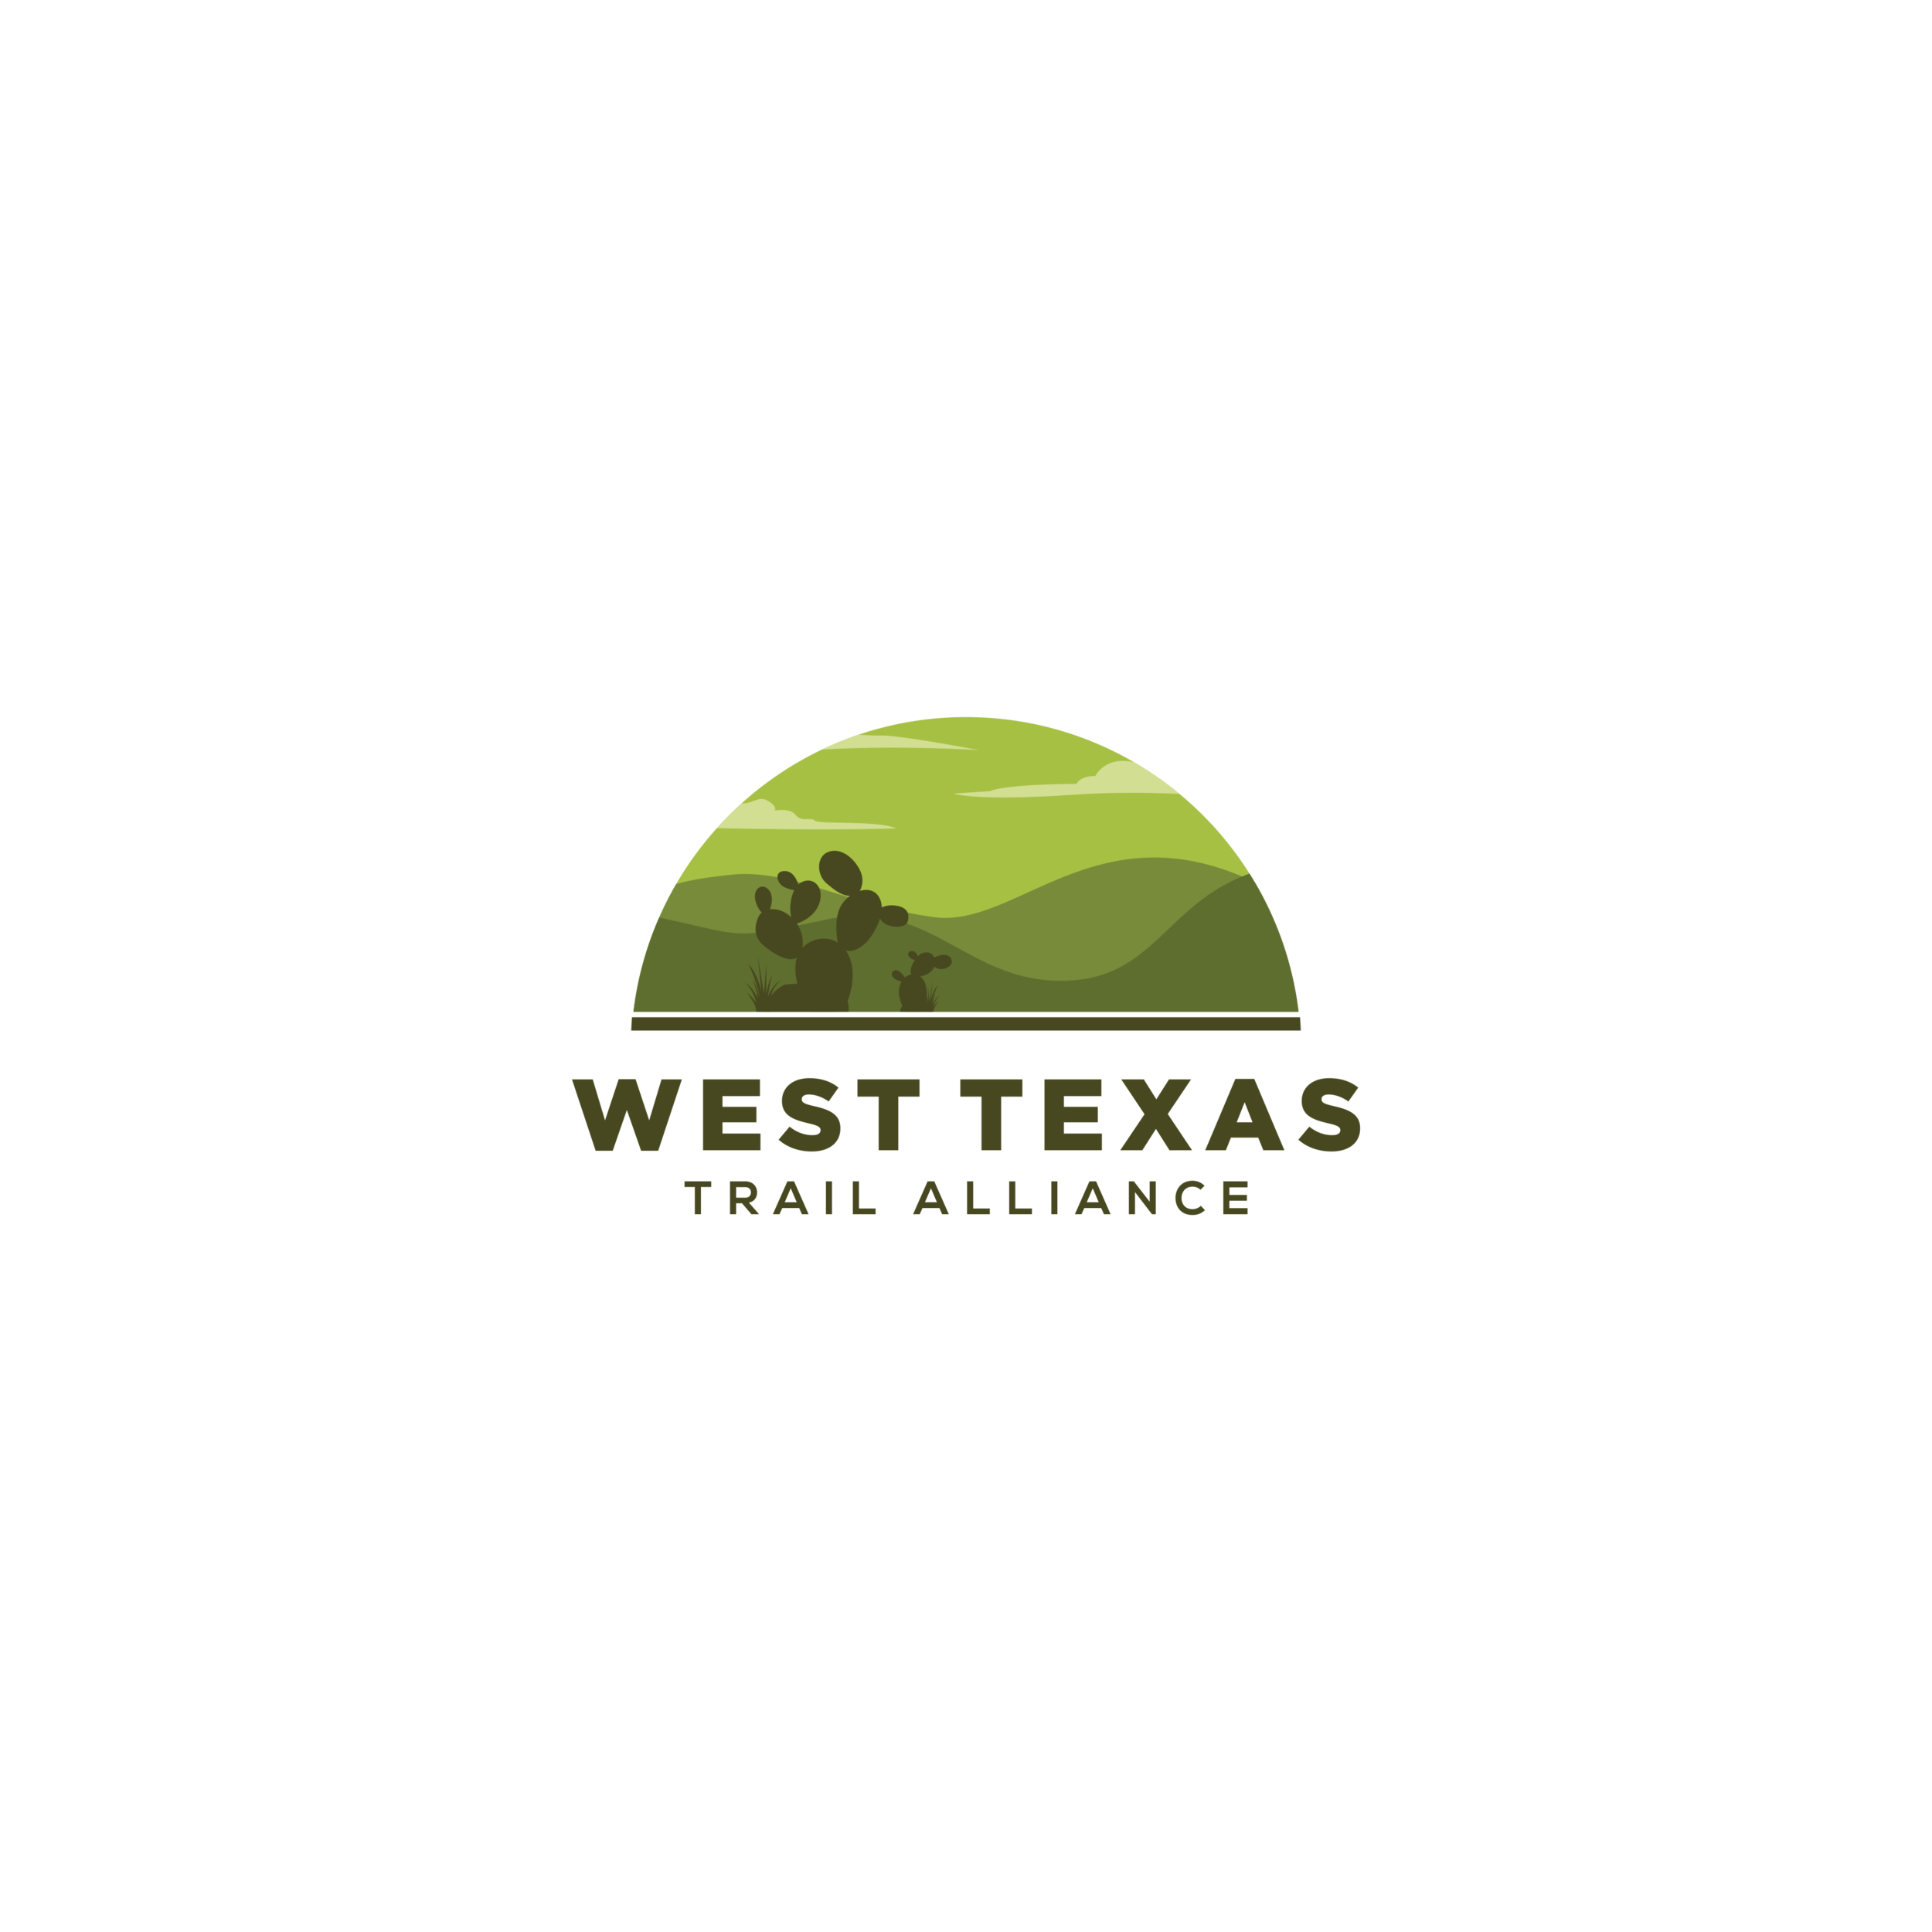 Who we are - Our board is comprised of avid cyclists who also represent ViM Racing, The Permian Basin Bicycle Association, The Odessa Mountain Bike Park, and local bike shops.